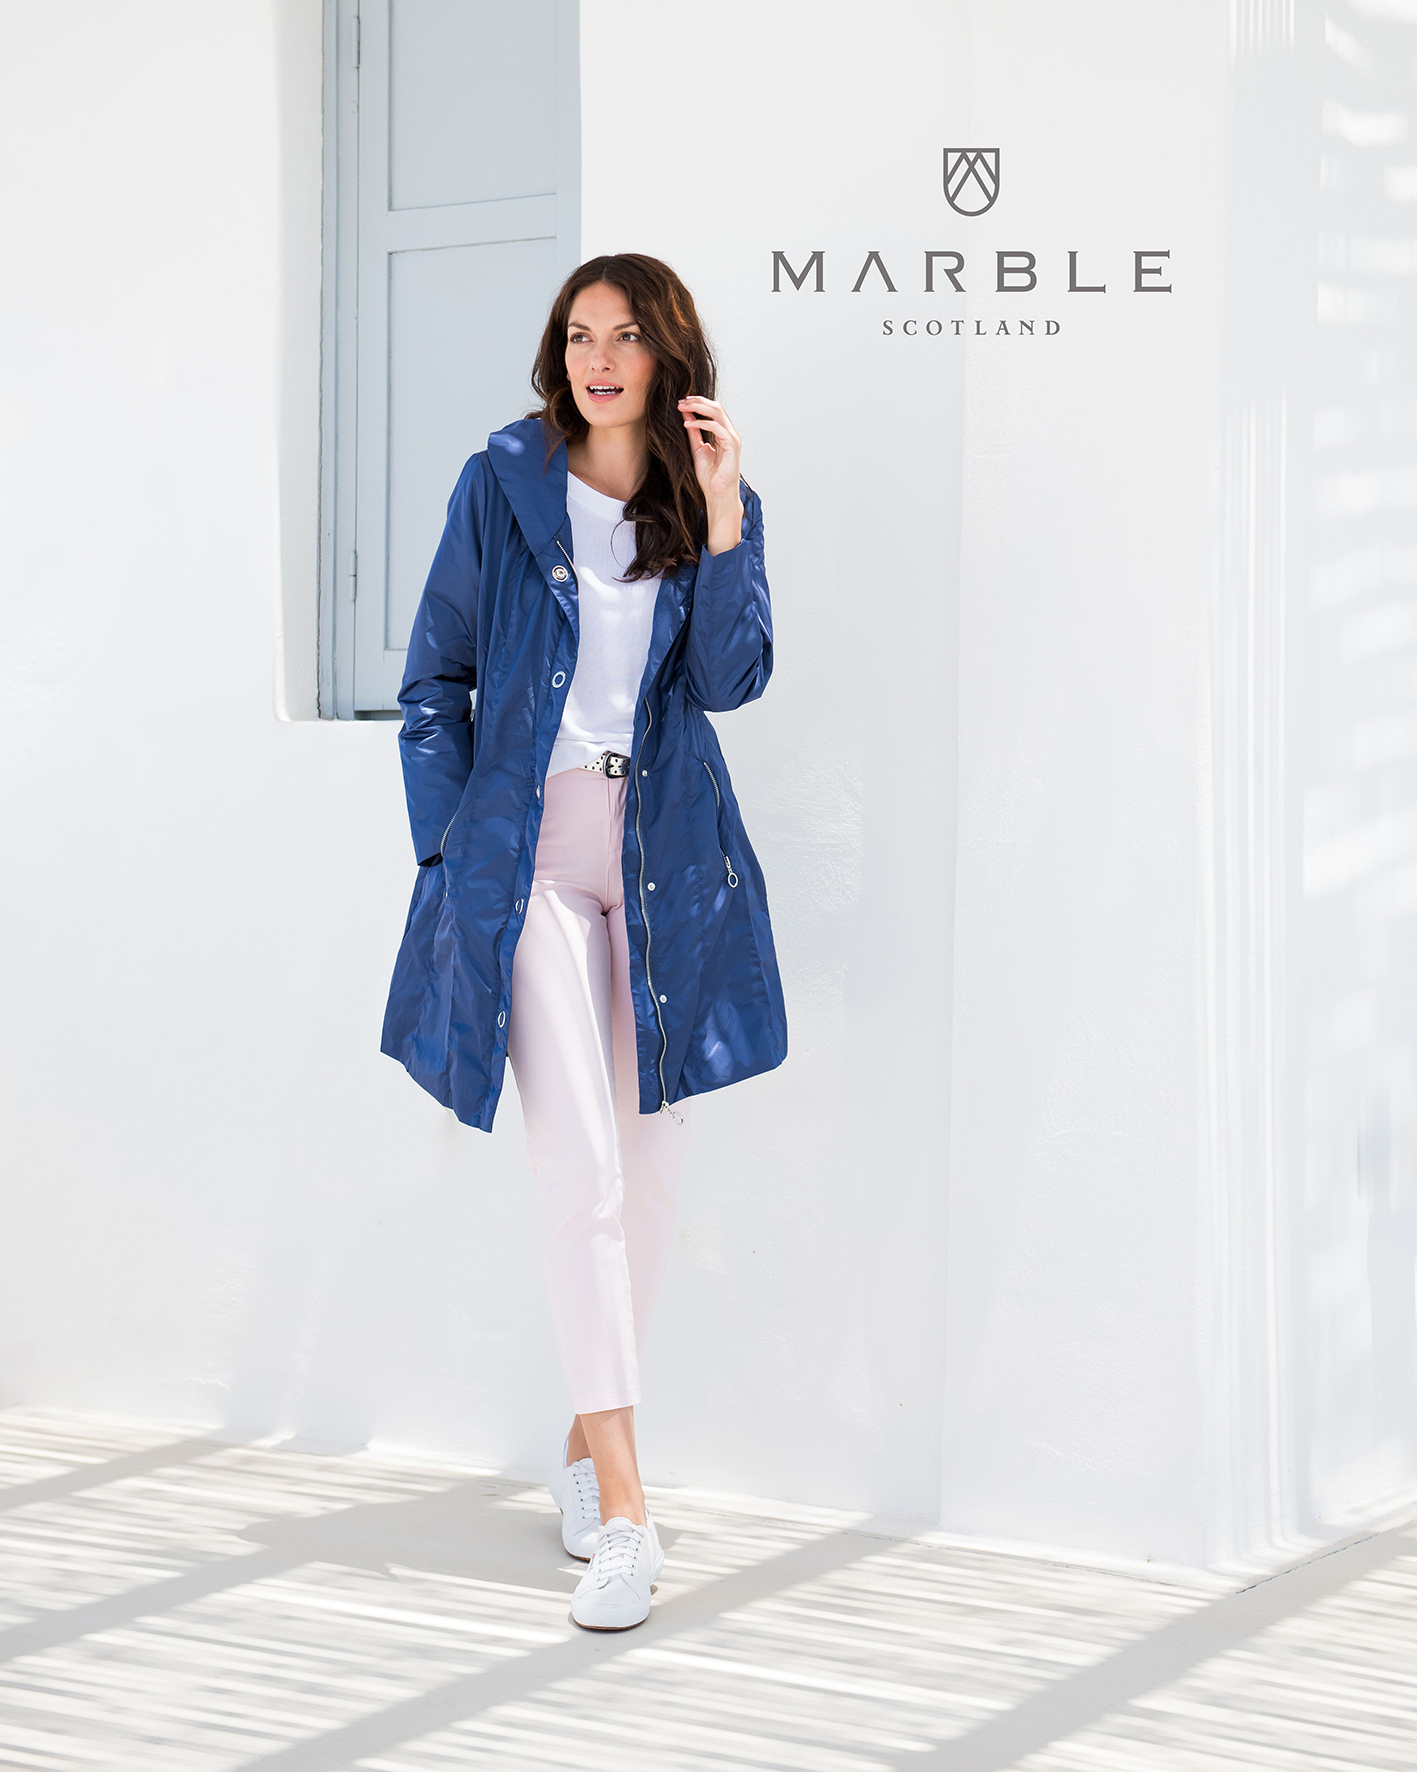 5737 MARBLE OUTERWEAR